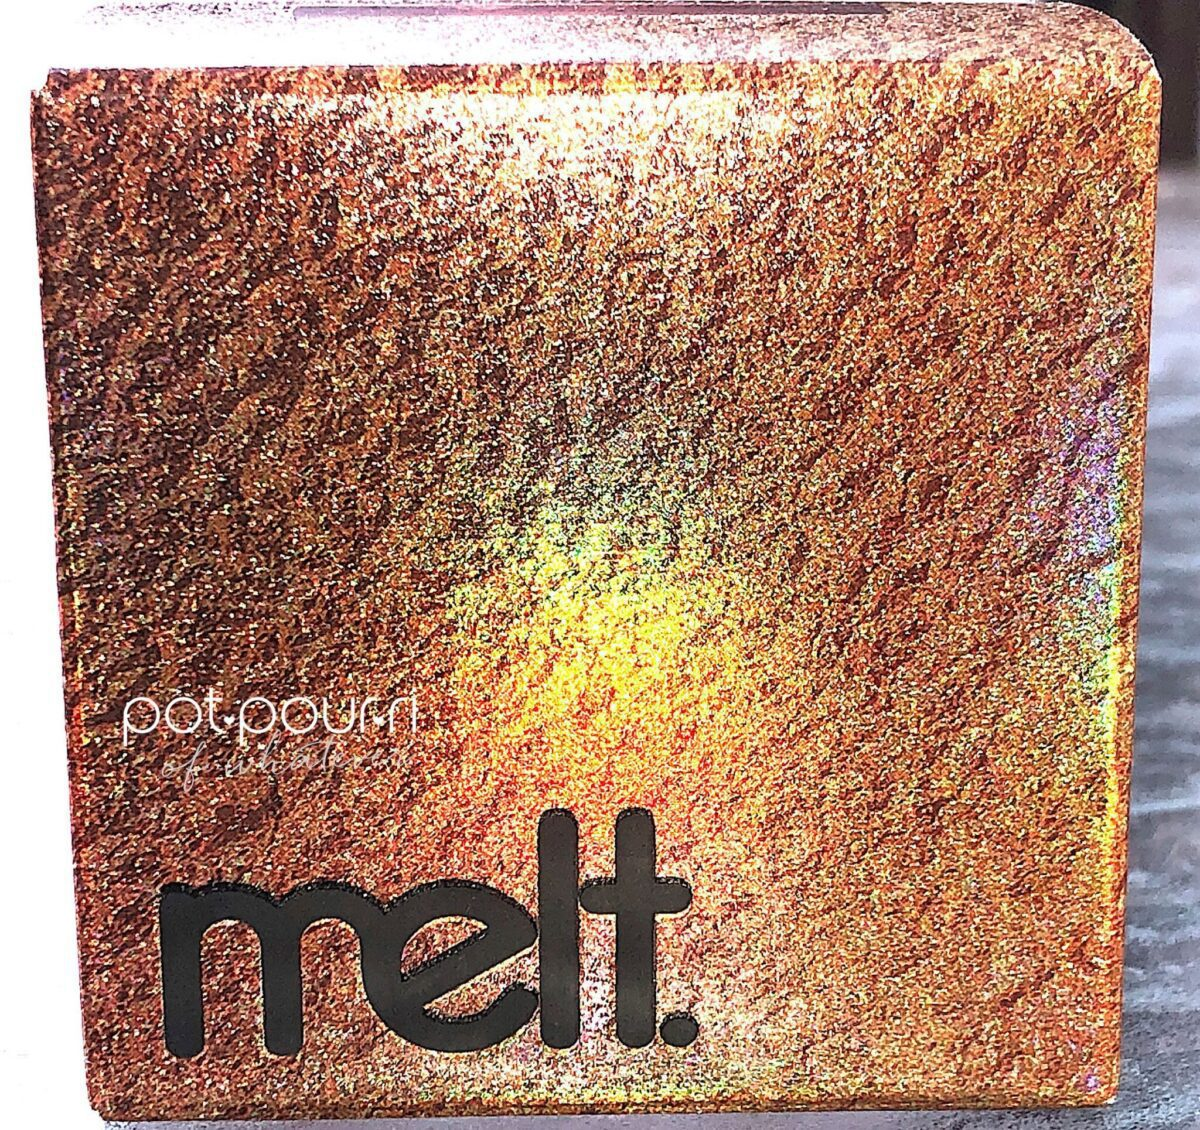 MELT SHAPE SHIFTER STACK OF 4 PACKAGING